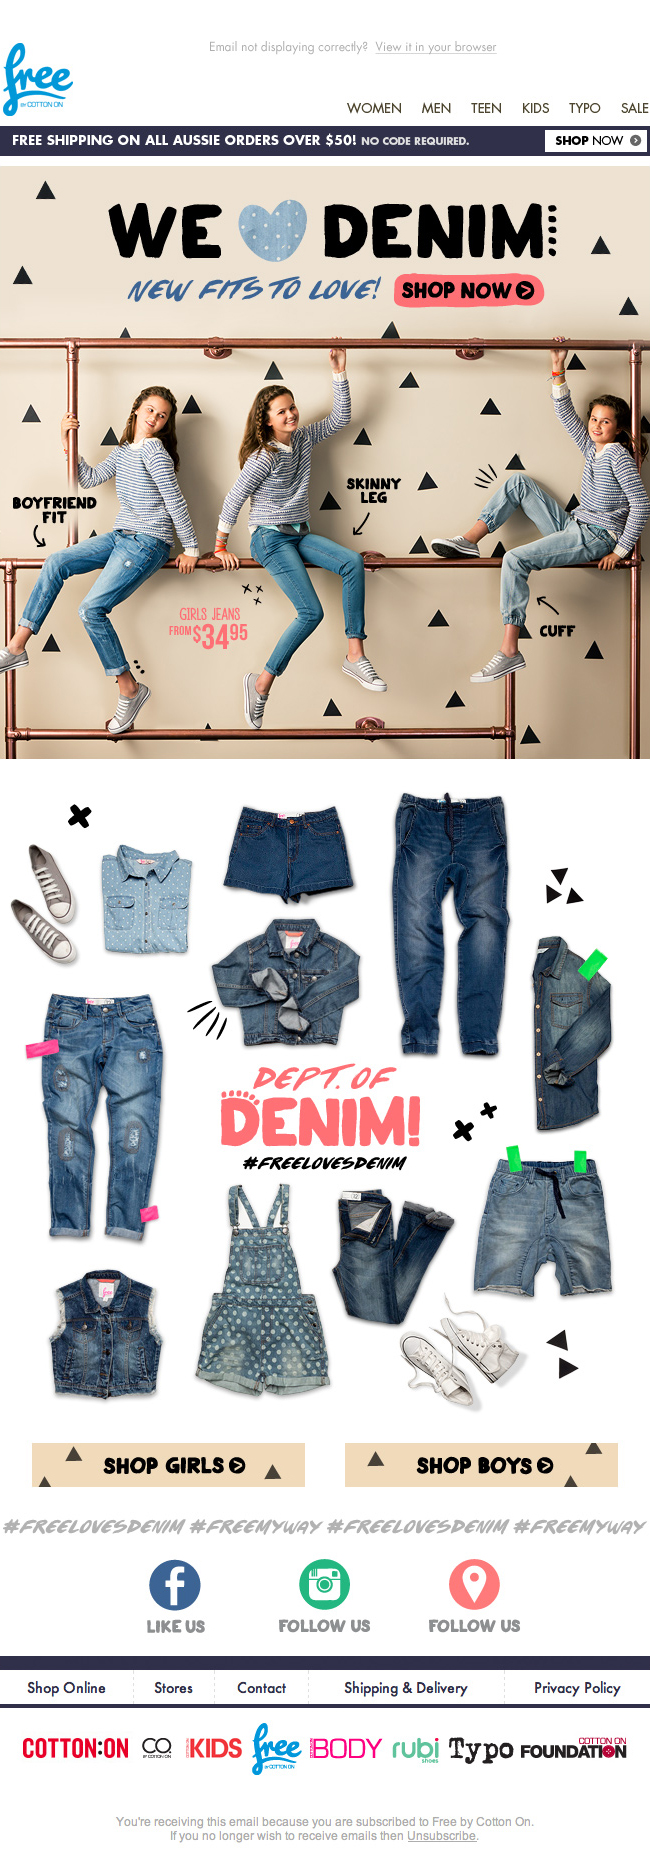 FREE-EDM-30JUN-DENIM